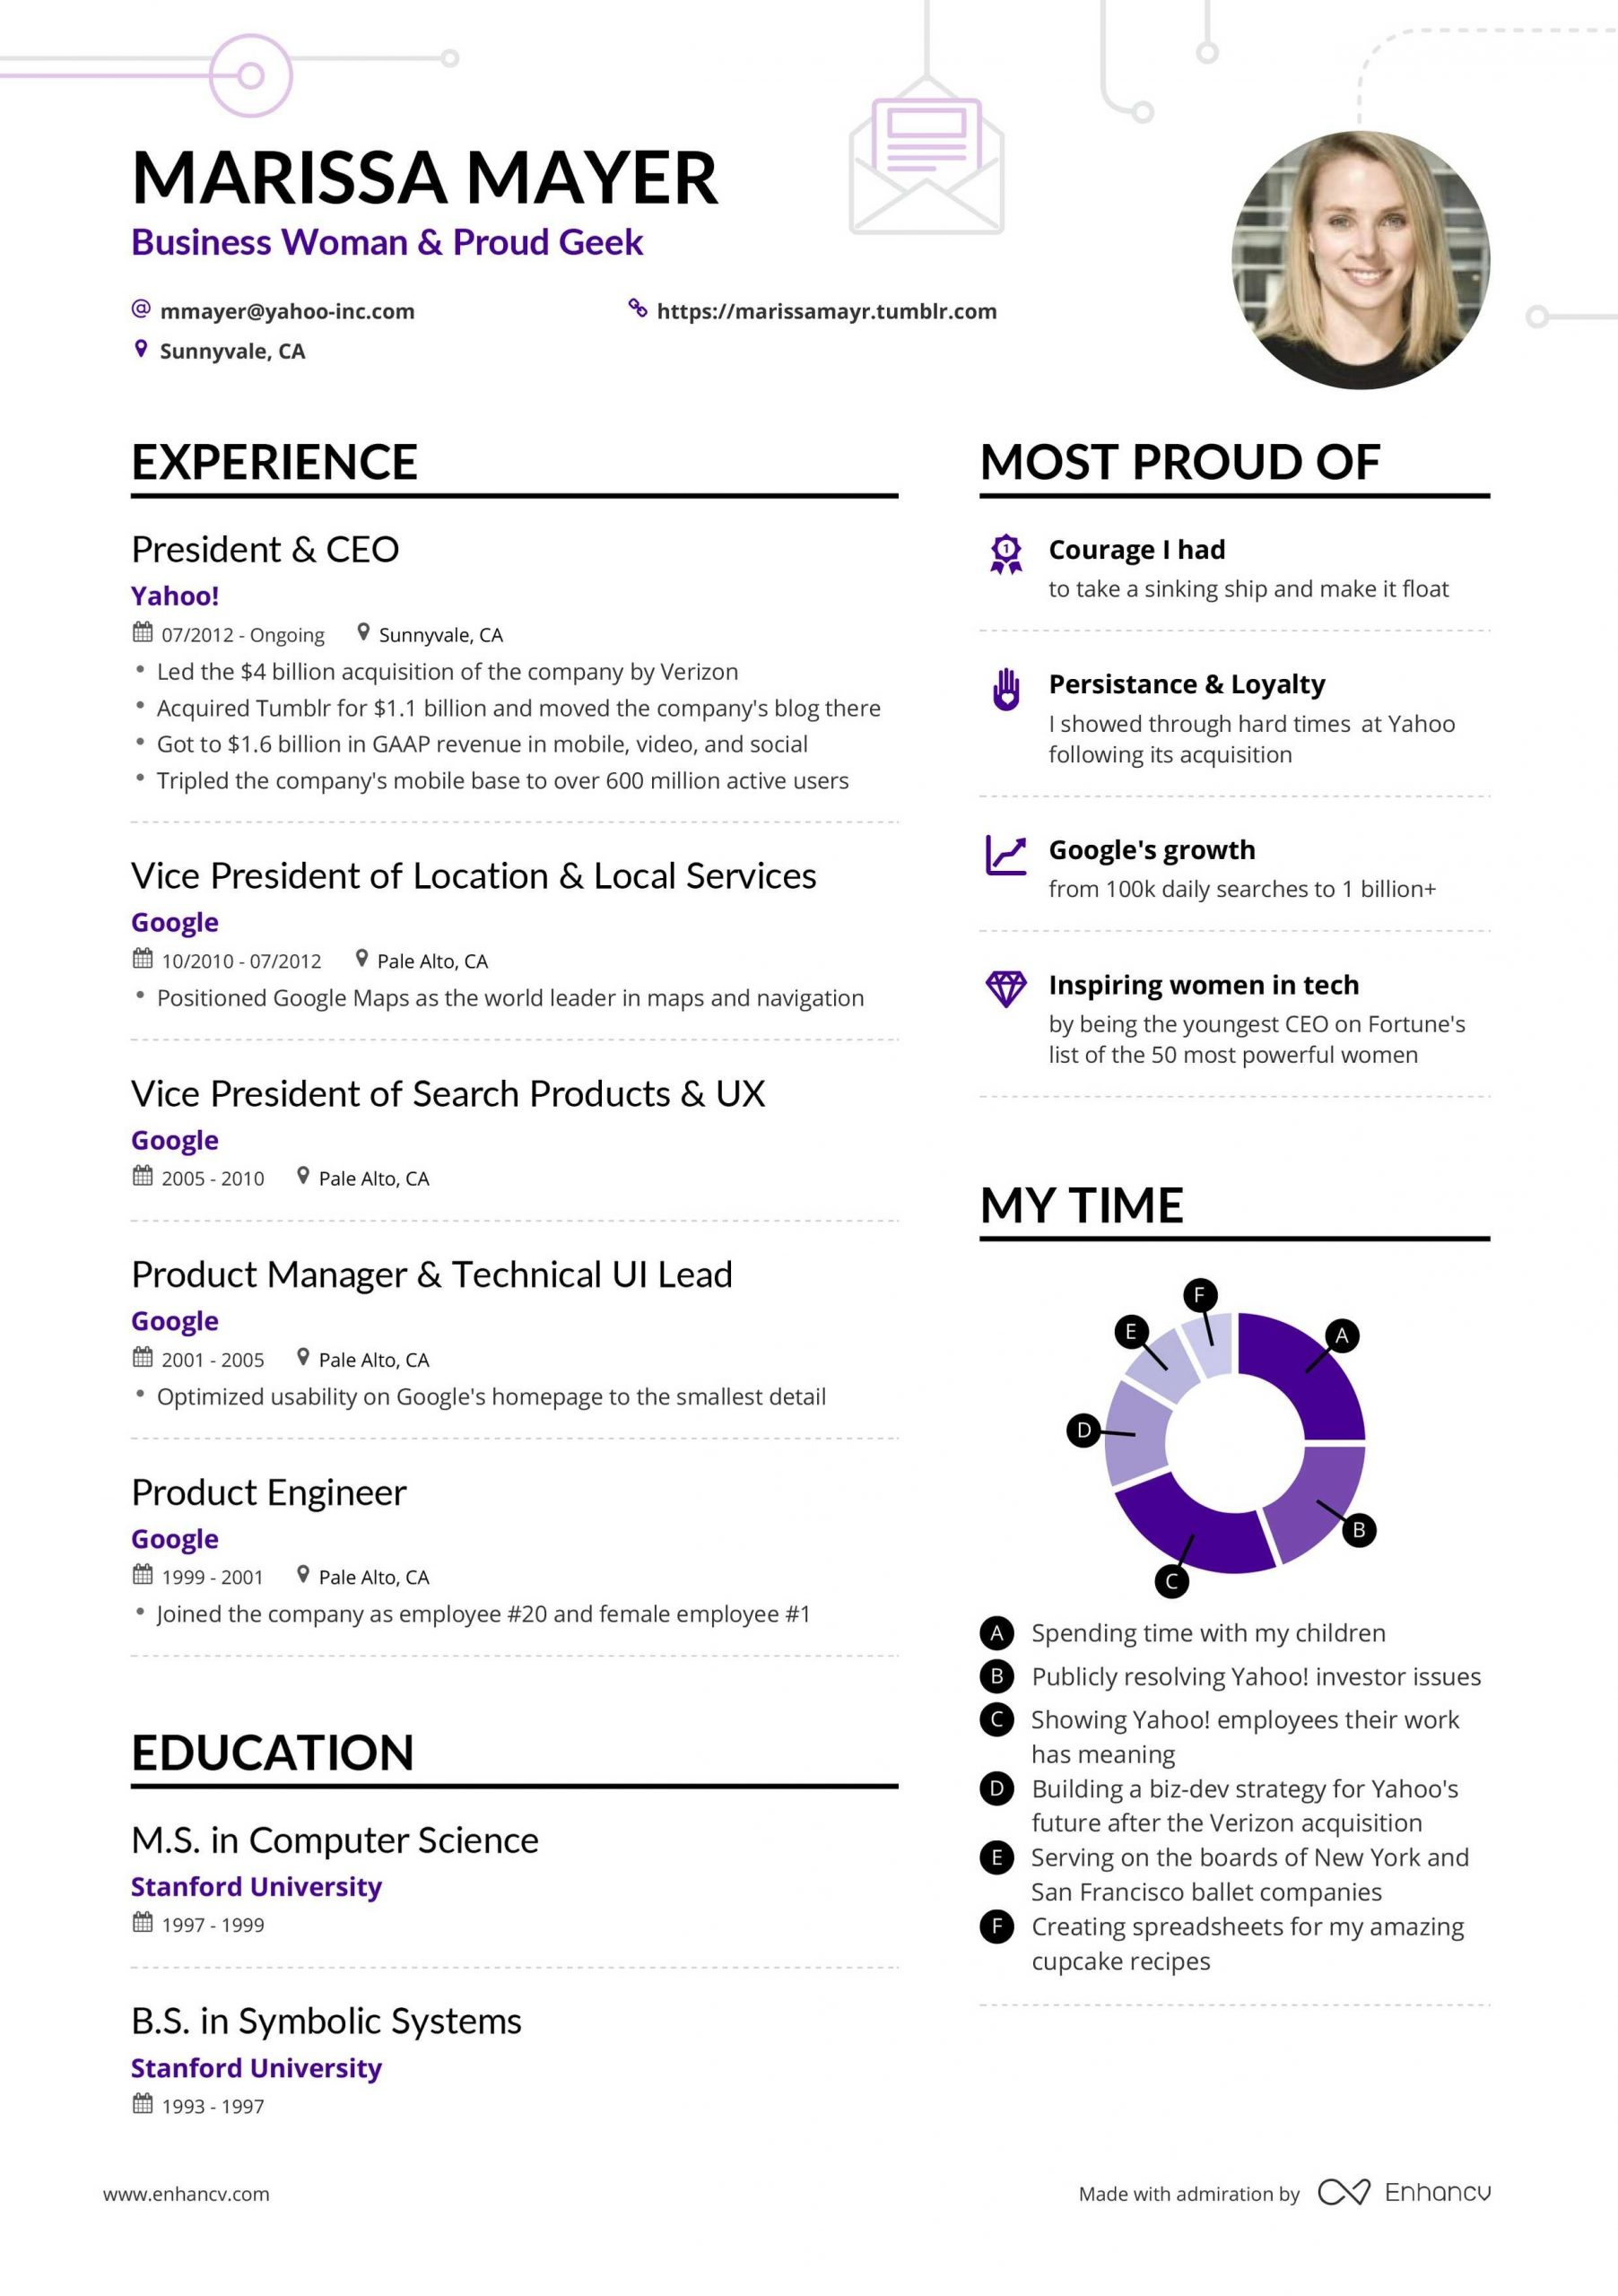 yahoo ceo resume template  Marissa Mayer's Yahoo CEO Resume Example | Enhancv - yahoo ceo resume template